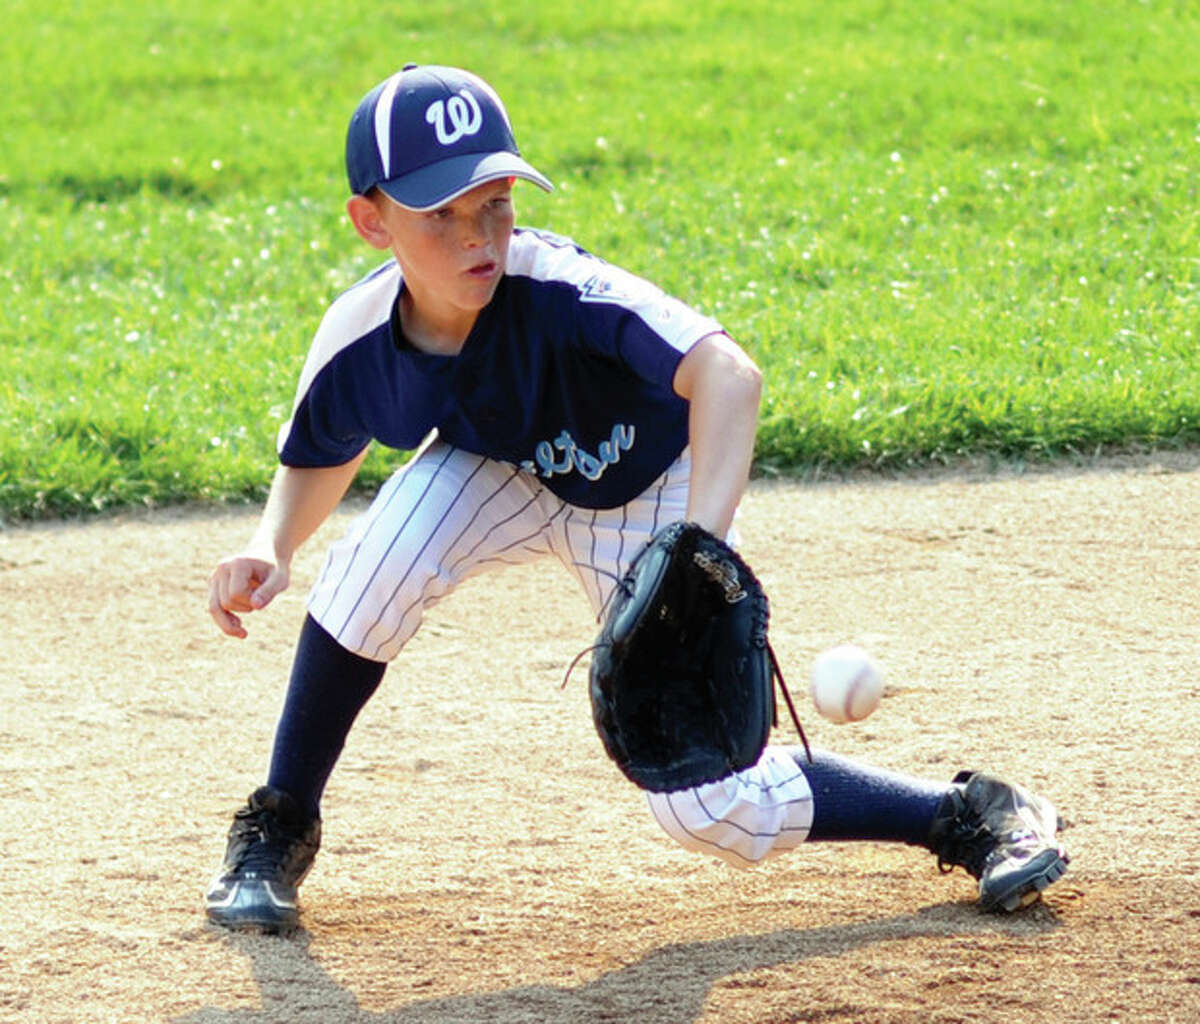 Photo by John Nash Wilton's Zach Liston backhands a ground ball for an out during Wednesday's 10-year-old District 1 Little League Pool Play finale in Darien. Below, Wilton 12s pitcher Harry Hovland whips a pitch to the plate in a win over Norwalk.